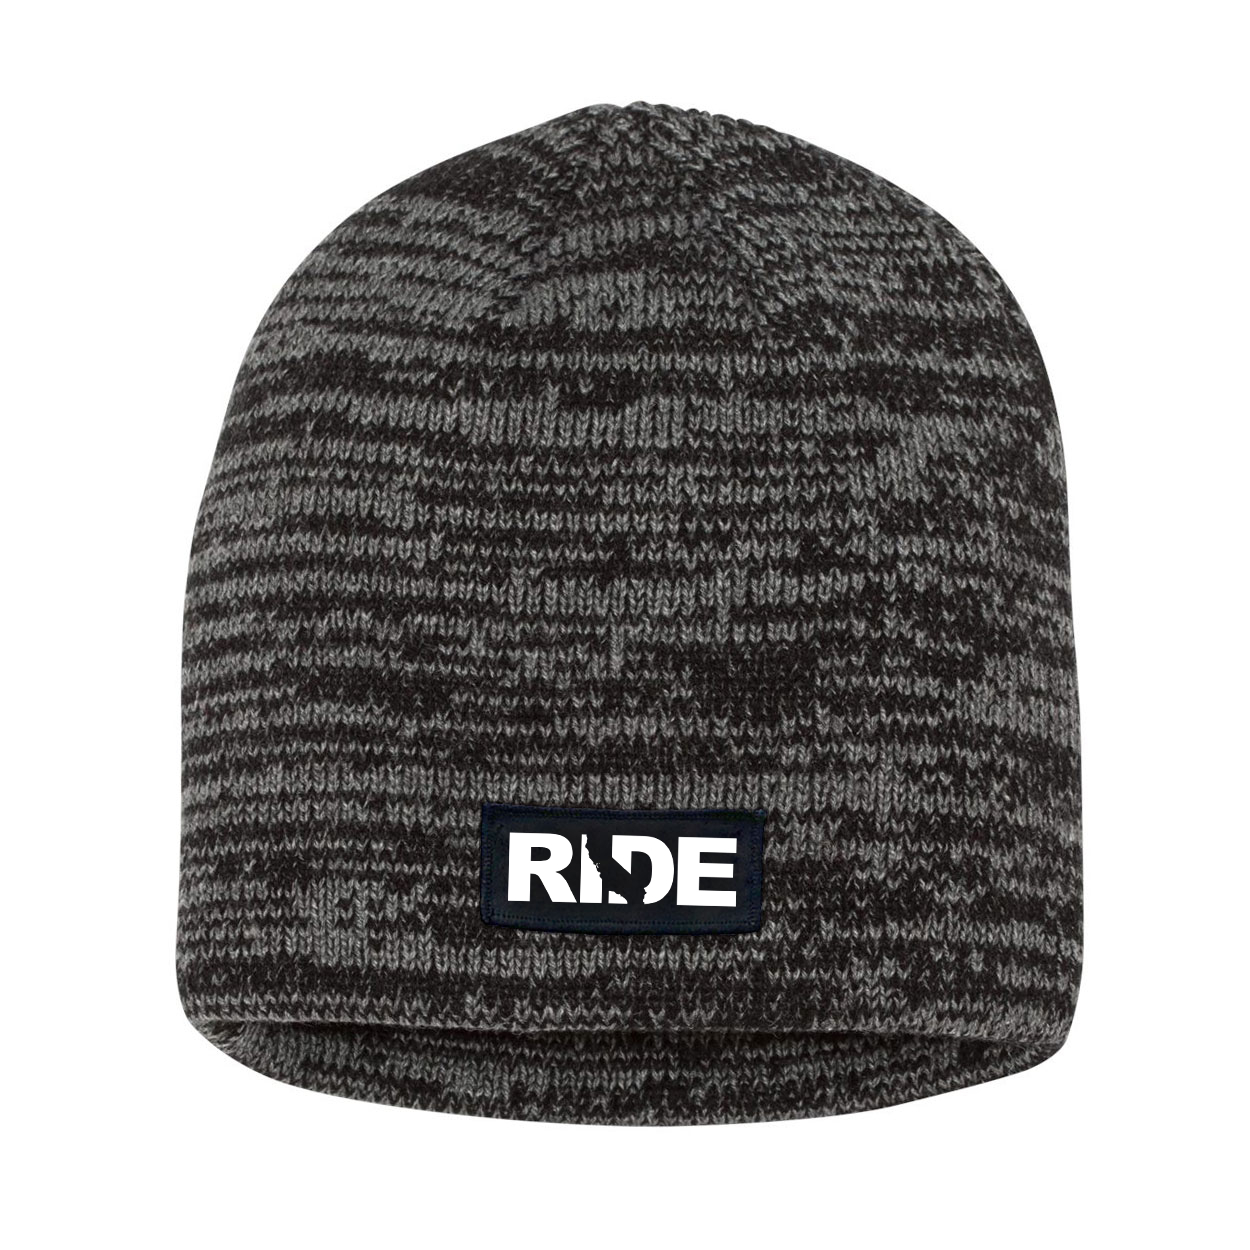 Ride California Night Out Woven Patch Skully Marled Knit Beanie Black/Gray (White Logo)